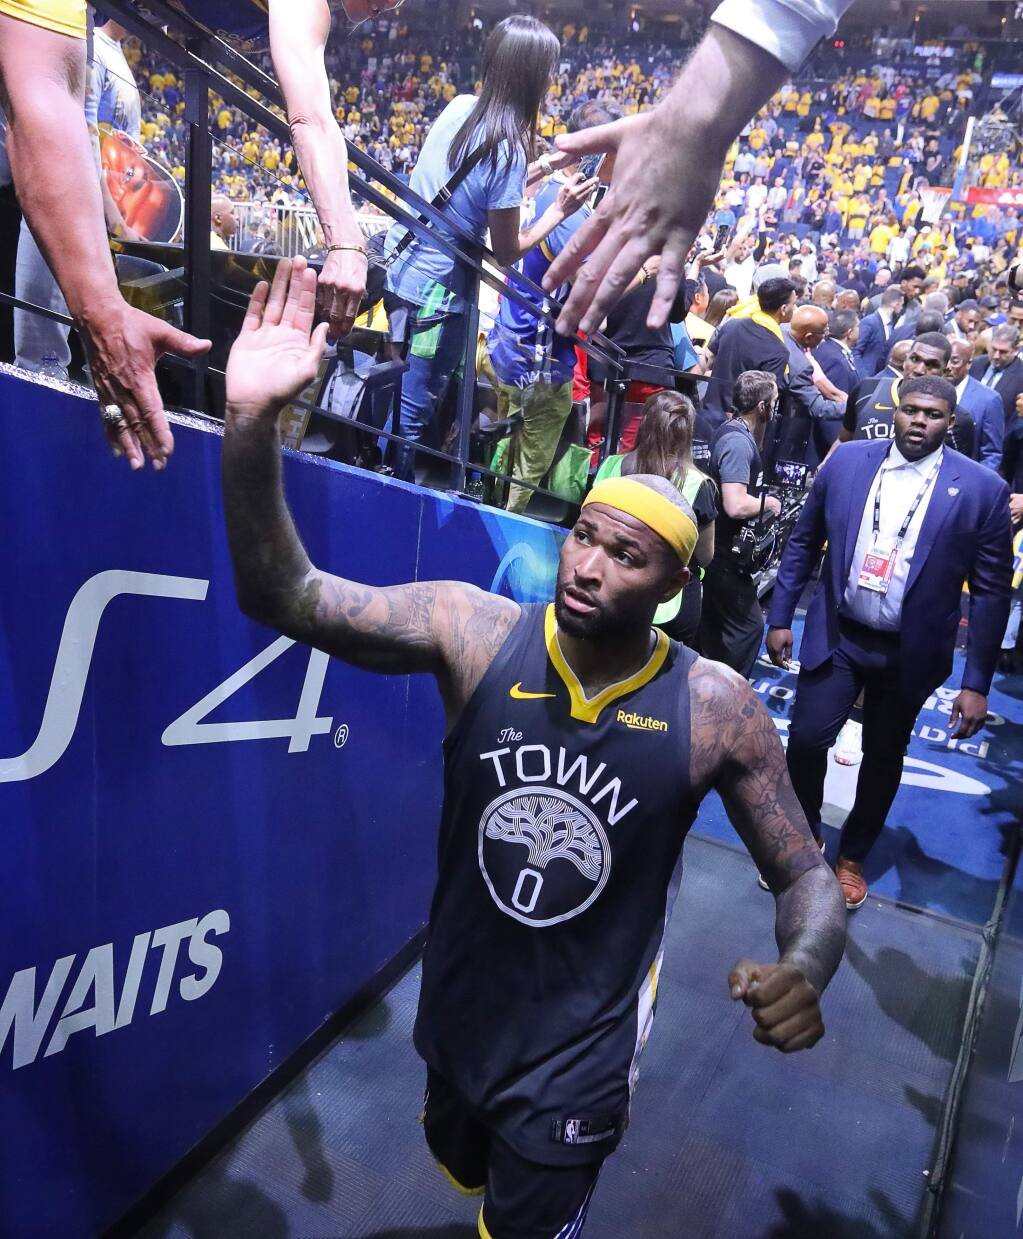 Barber Warriors Prove Their Mettle In Nba Finals Loss To Raptors